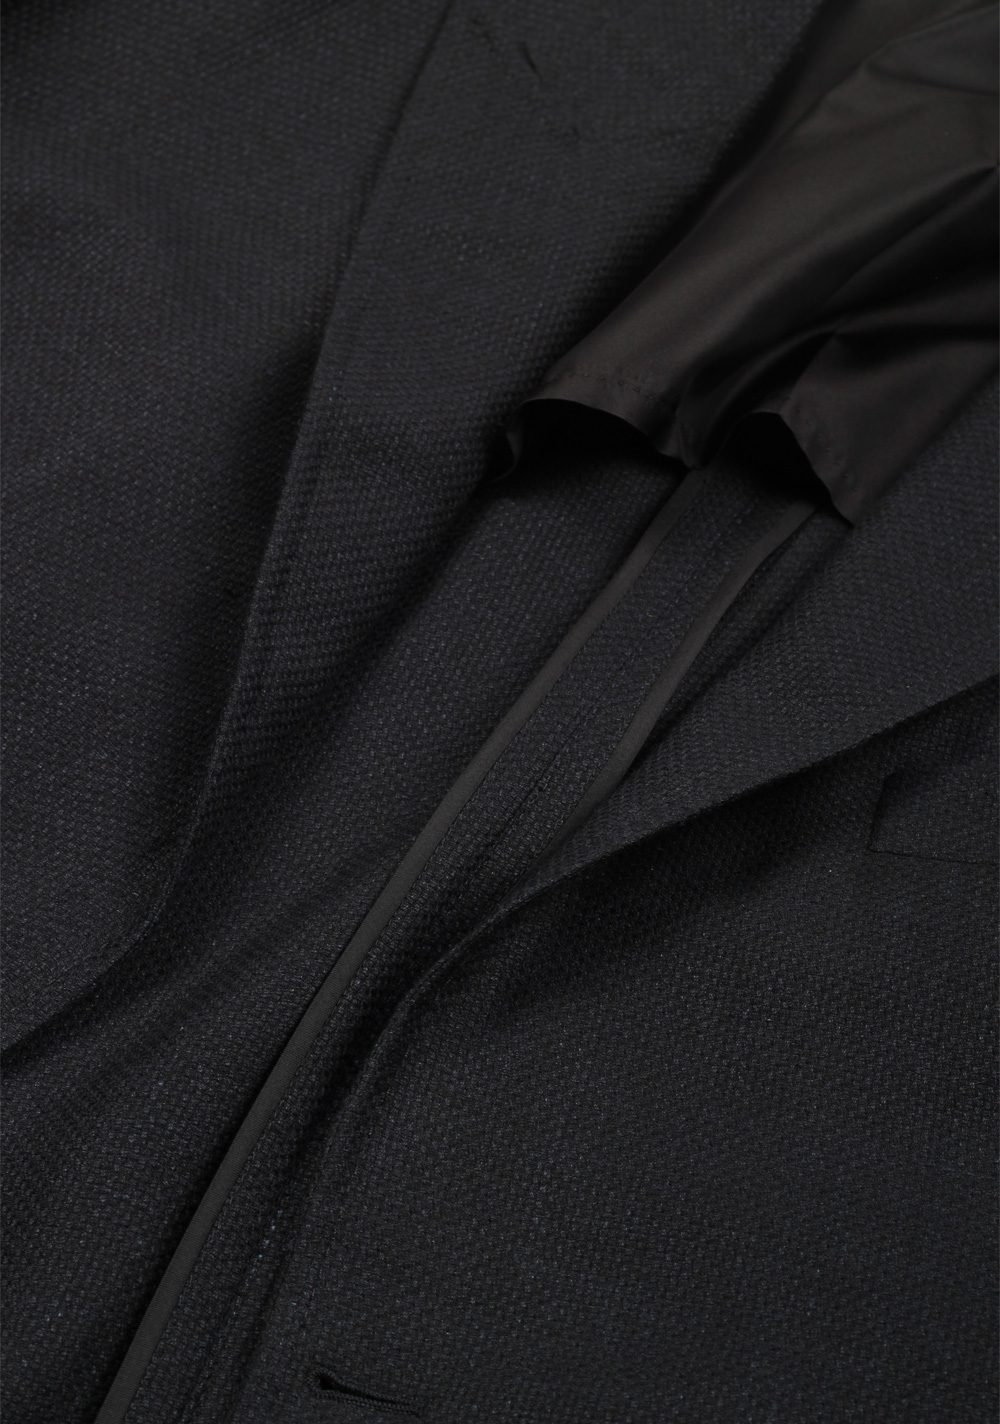 TOM FORD O'Connor Black Sport Coat Fit Y | Costume Limité